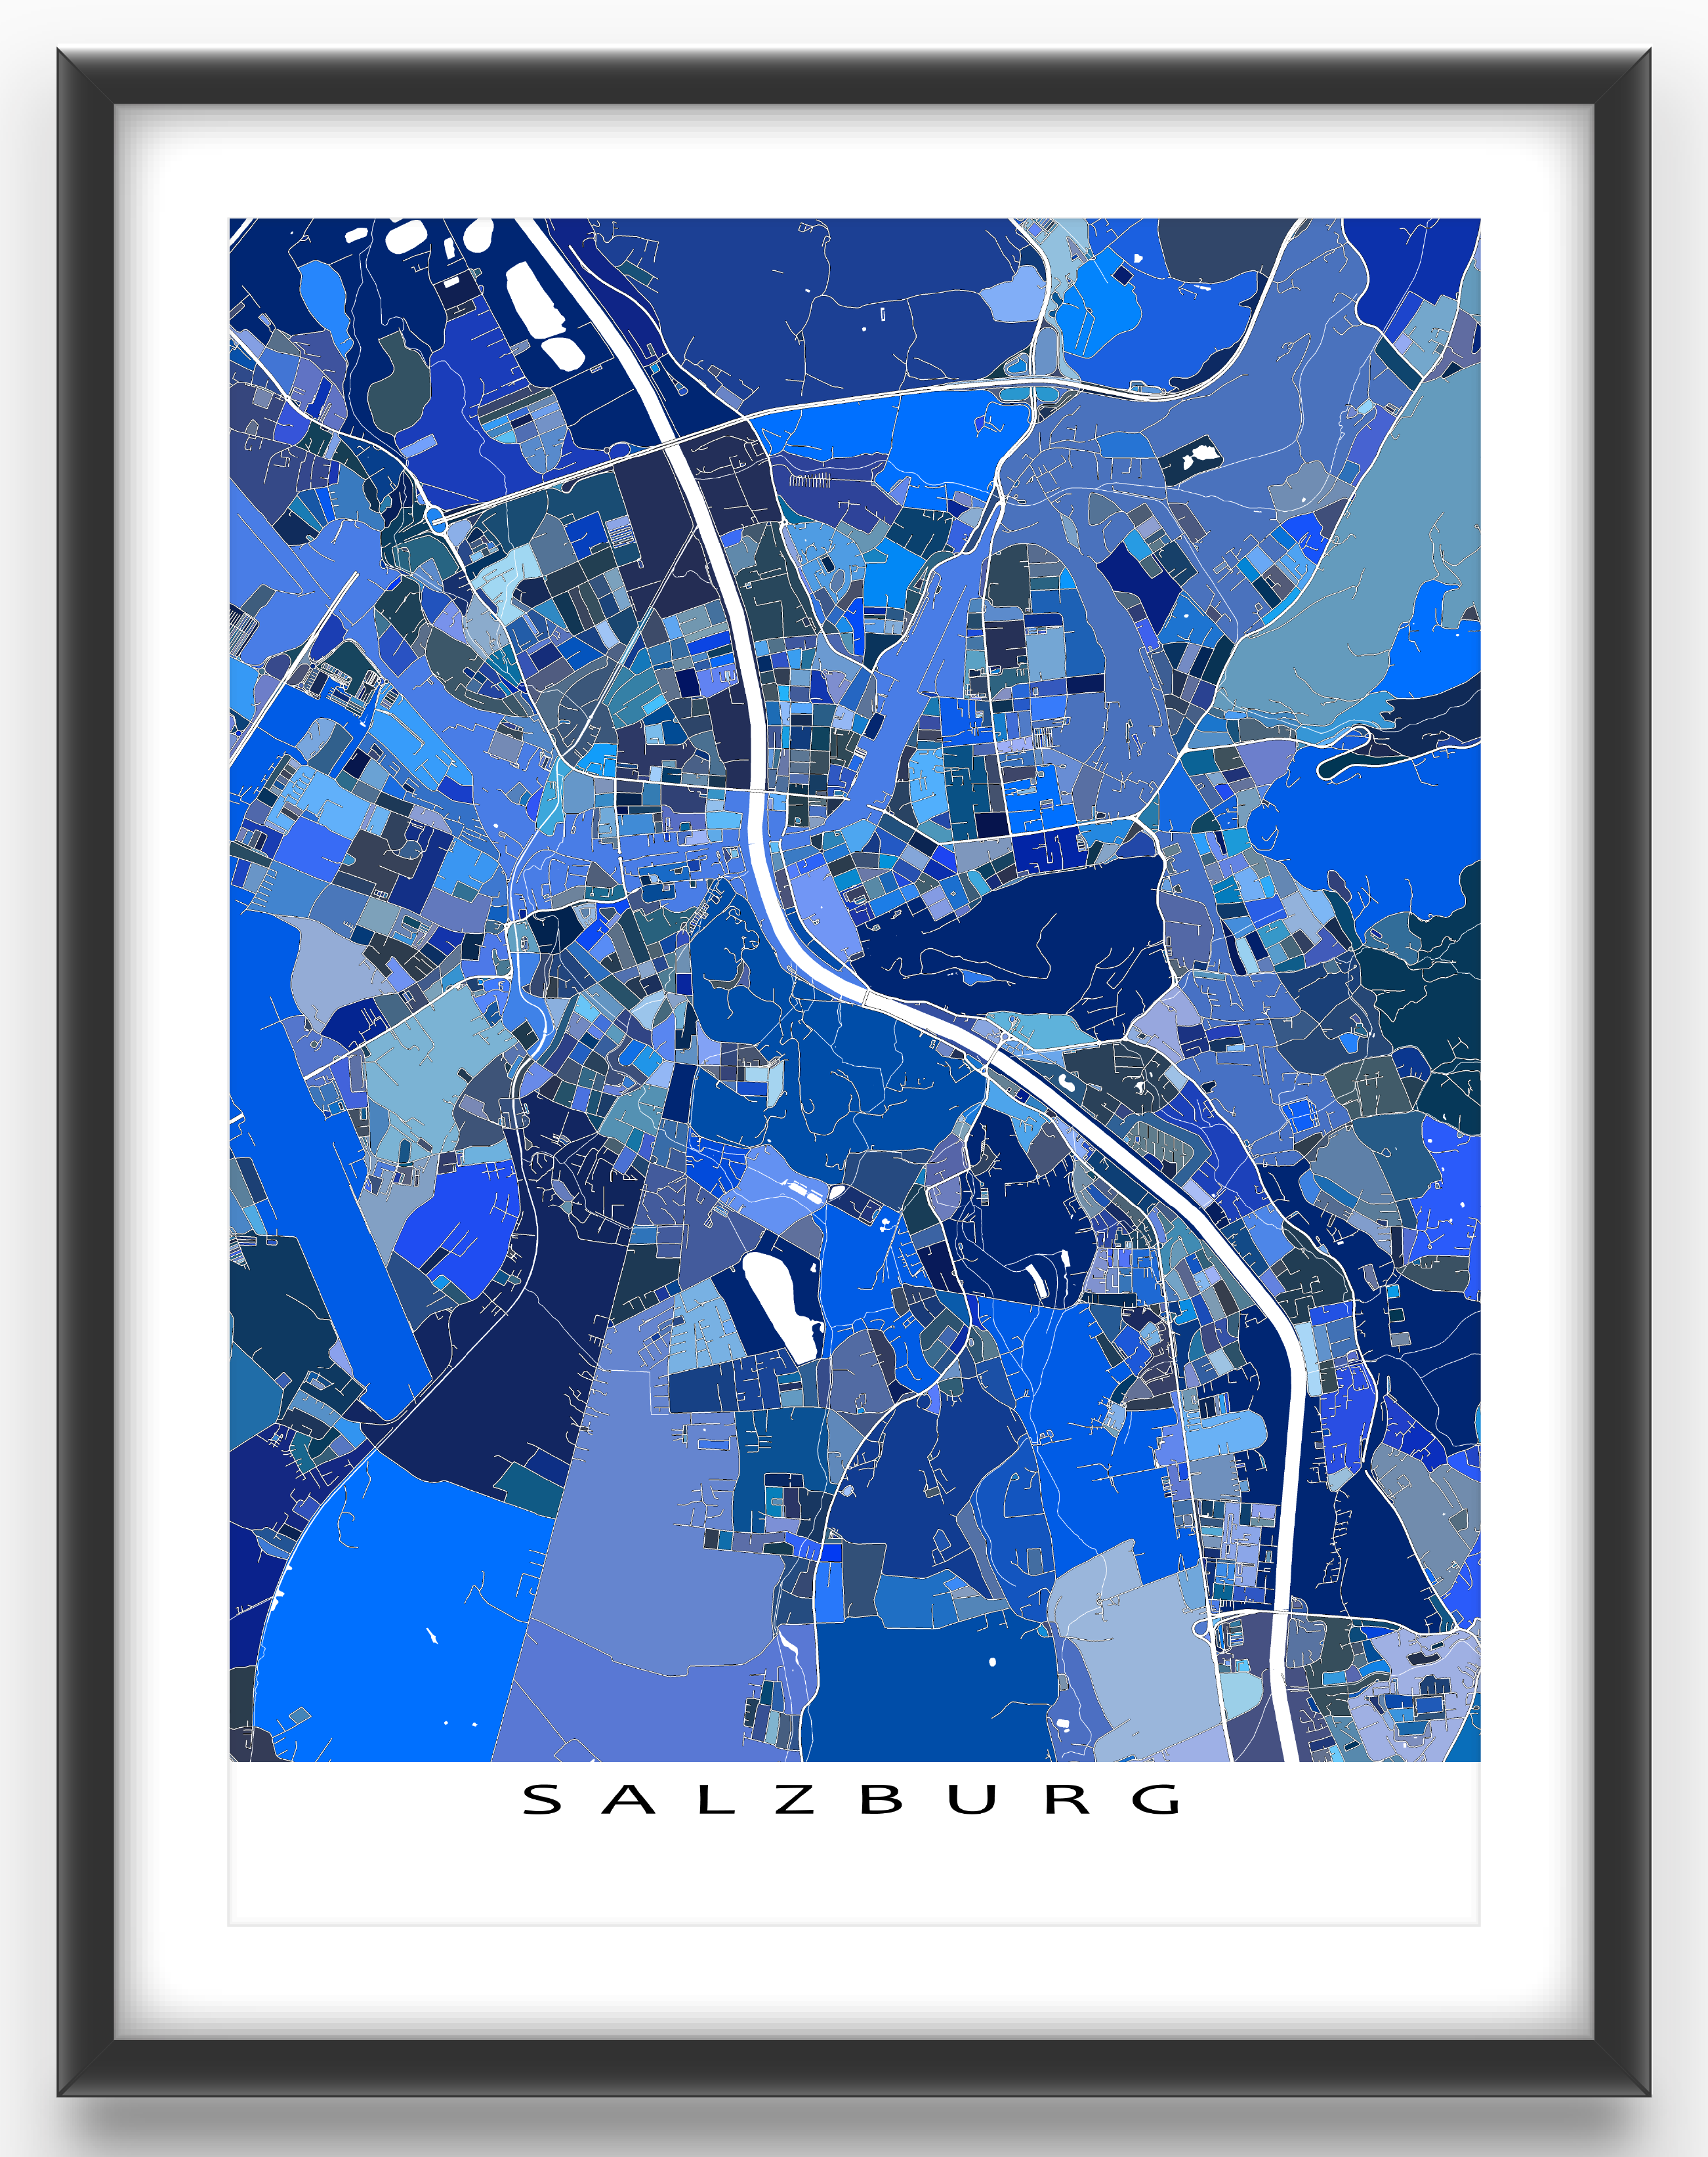 Salzburg map art print featuring the beautiful European city of Salzburg, Austria.     This Salzburg city map has a modern design made from lots of little blue shapes. Each shape is actually a city block or a piece of land that combines with city streets - like a puzzle or mosaic - to form this Salzburg print. #salzburg #austria #map